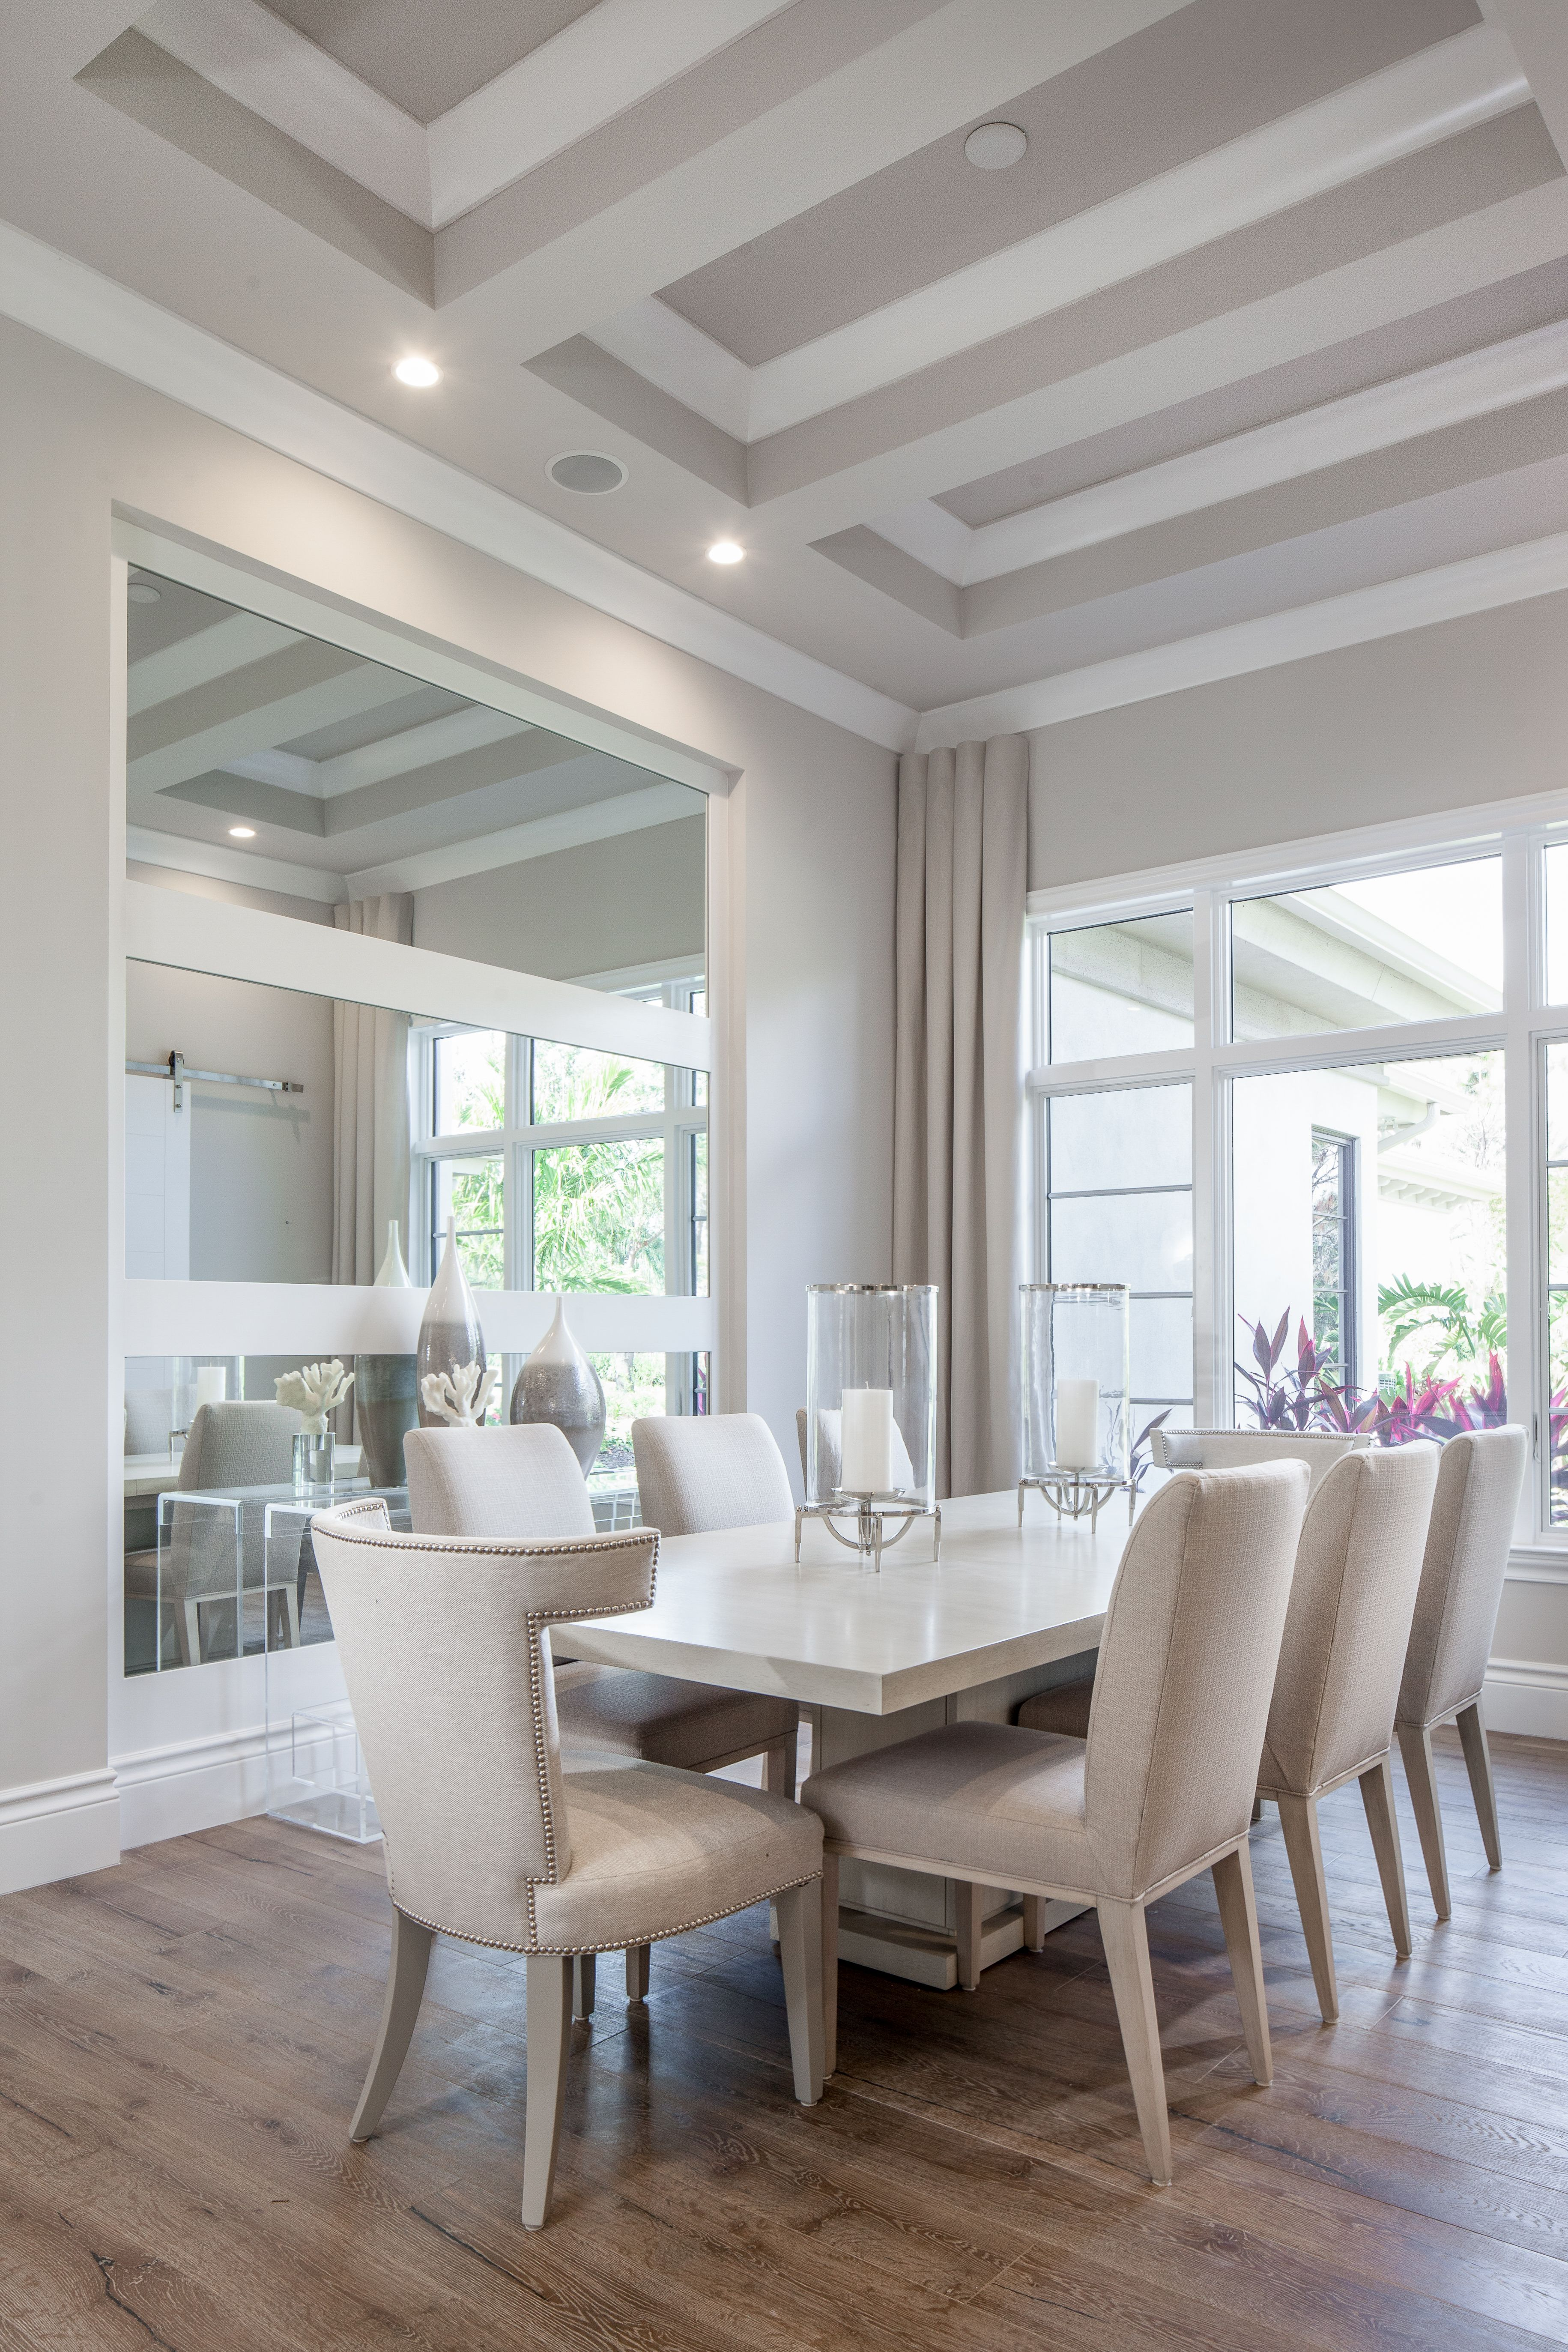 Design Of Dining Room And Living Room: This Is So Crisp Clean And Open ~ Love It!!!